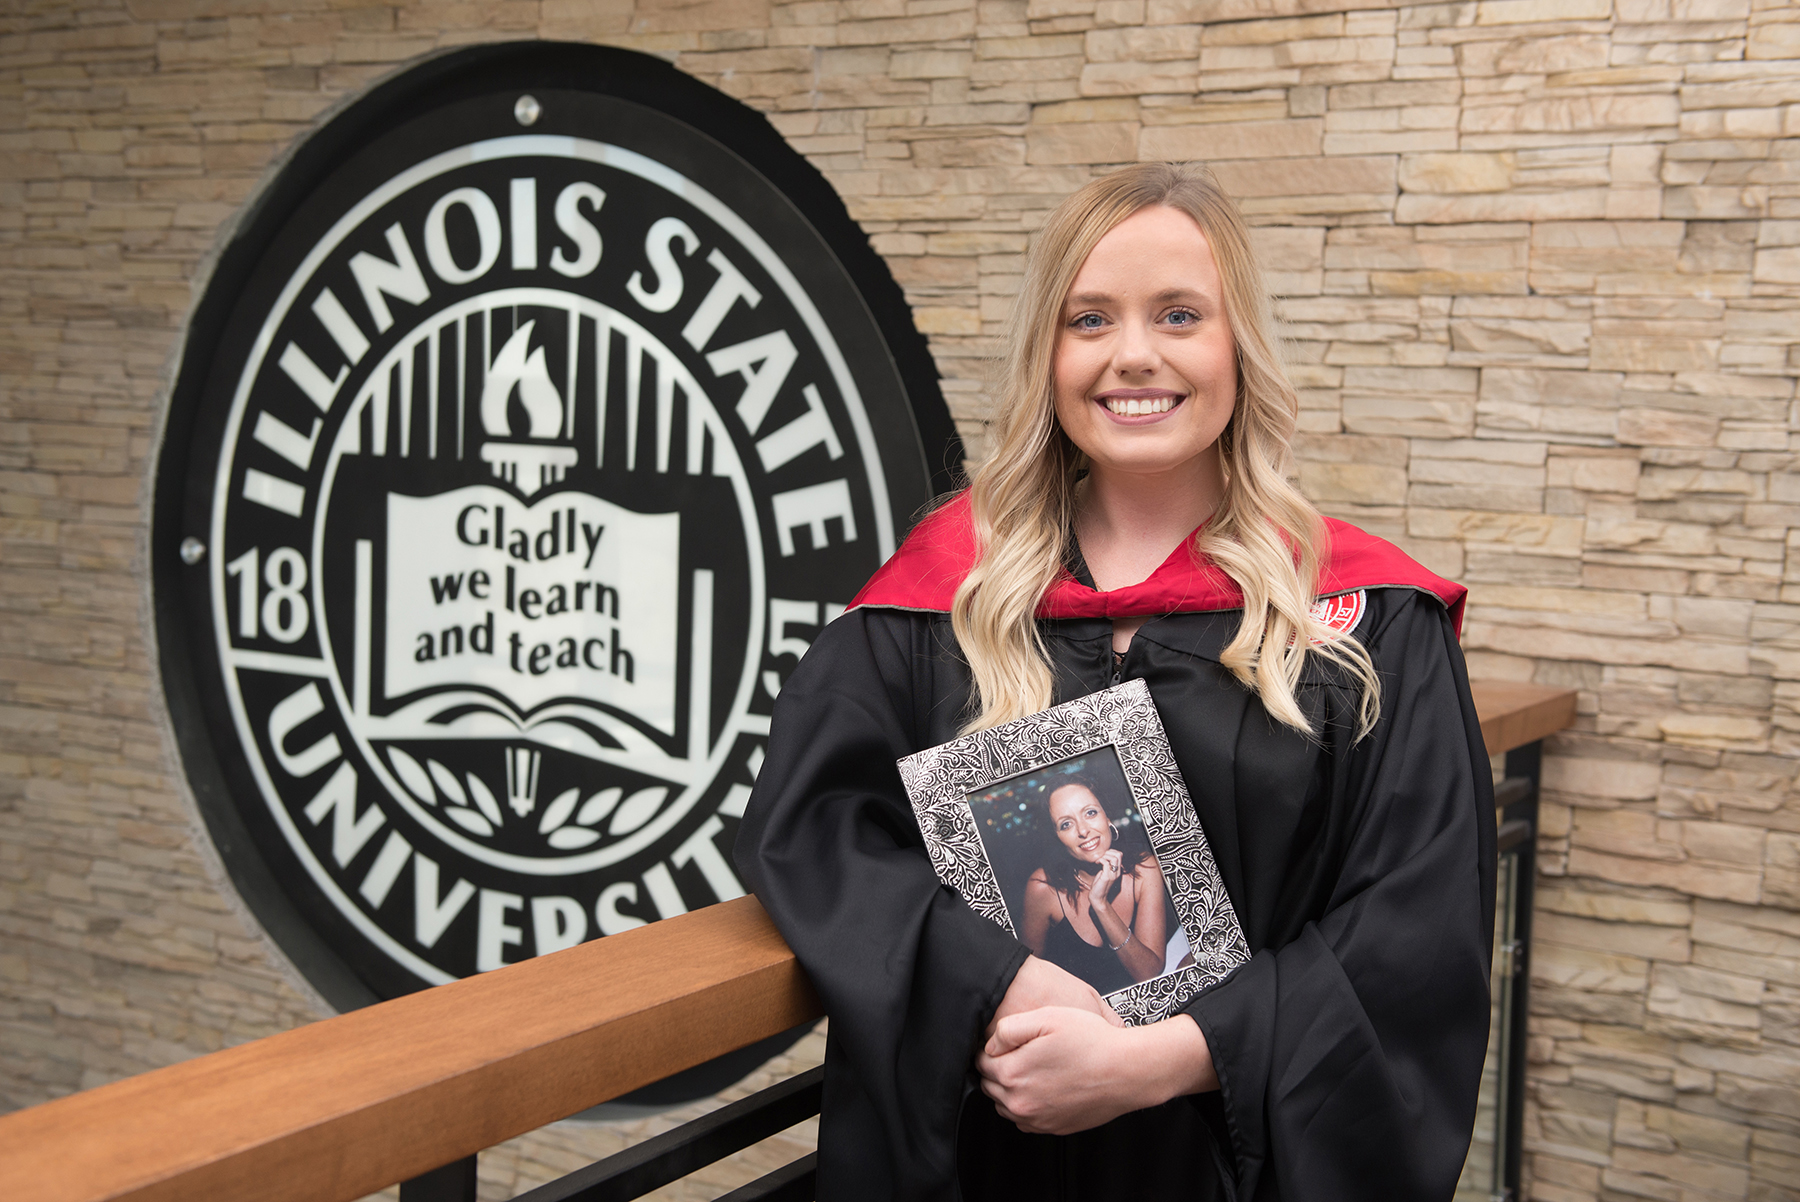 When Elizabeth Rice graduates with her master's in speech-language pathology May 10, she will be remembering her mother, Melissa Rice, who died in 2013.